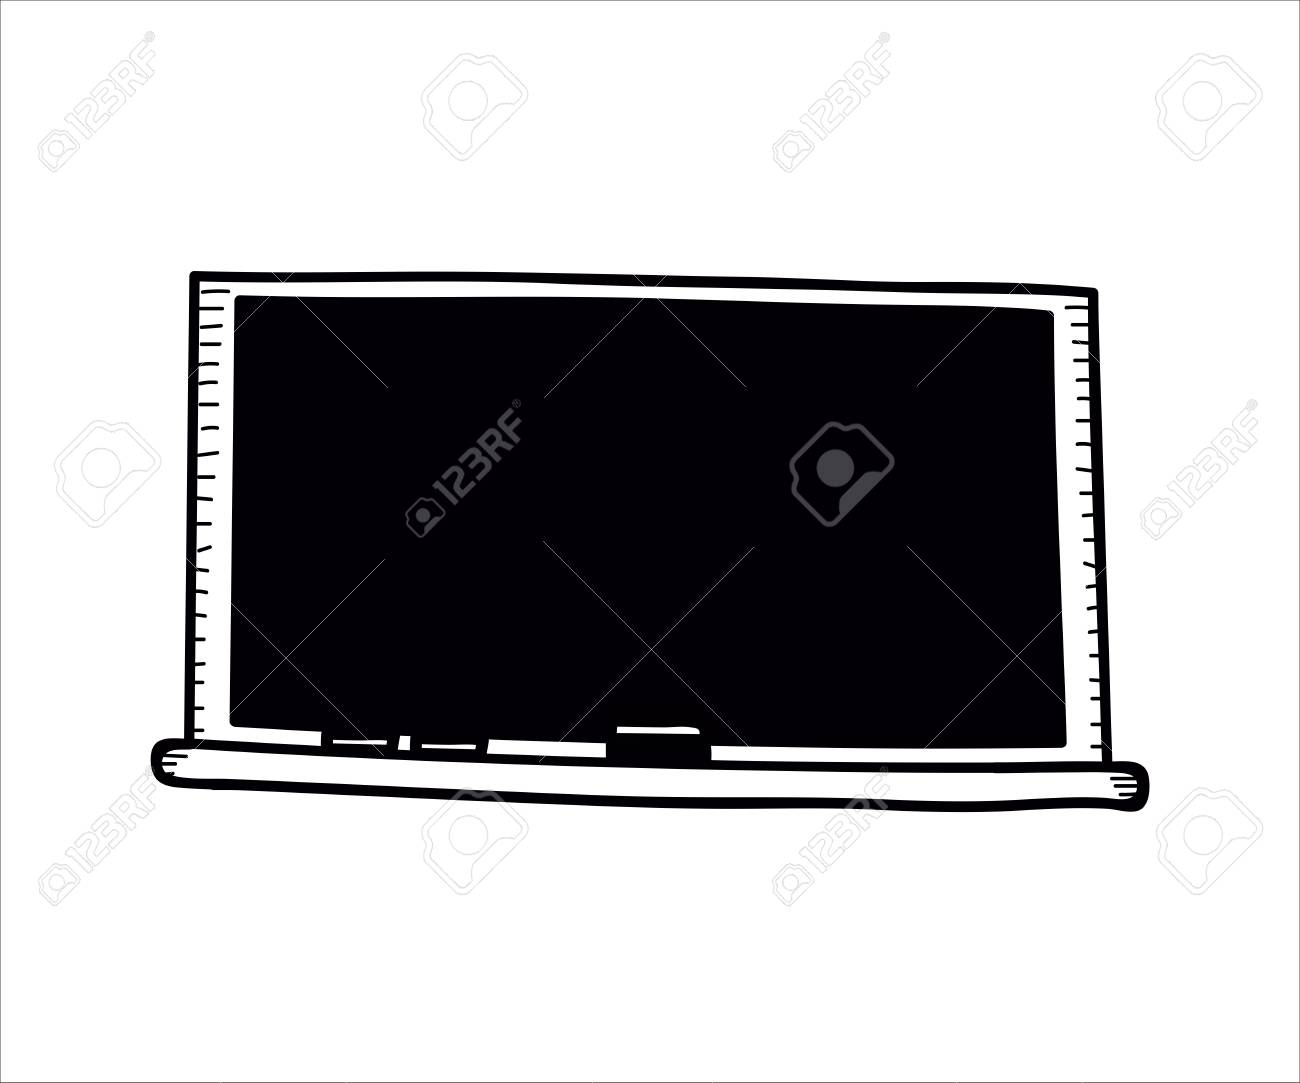 school objects empty blackboard with chalk and eraser vector royalty free cliparts vectors and stock illustration image 109242272 school objects empty blackboard with chalk and eraser vector